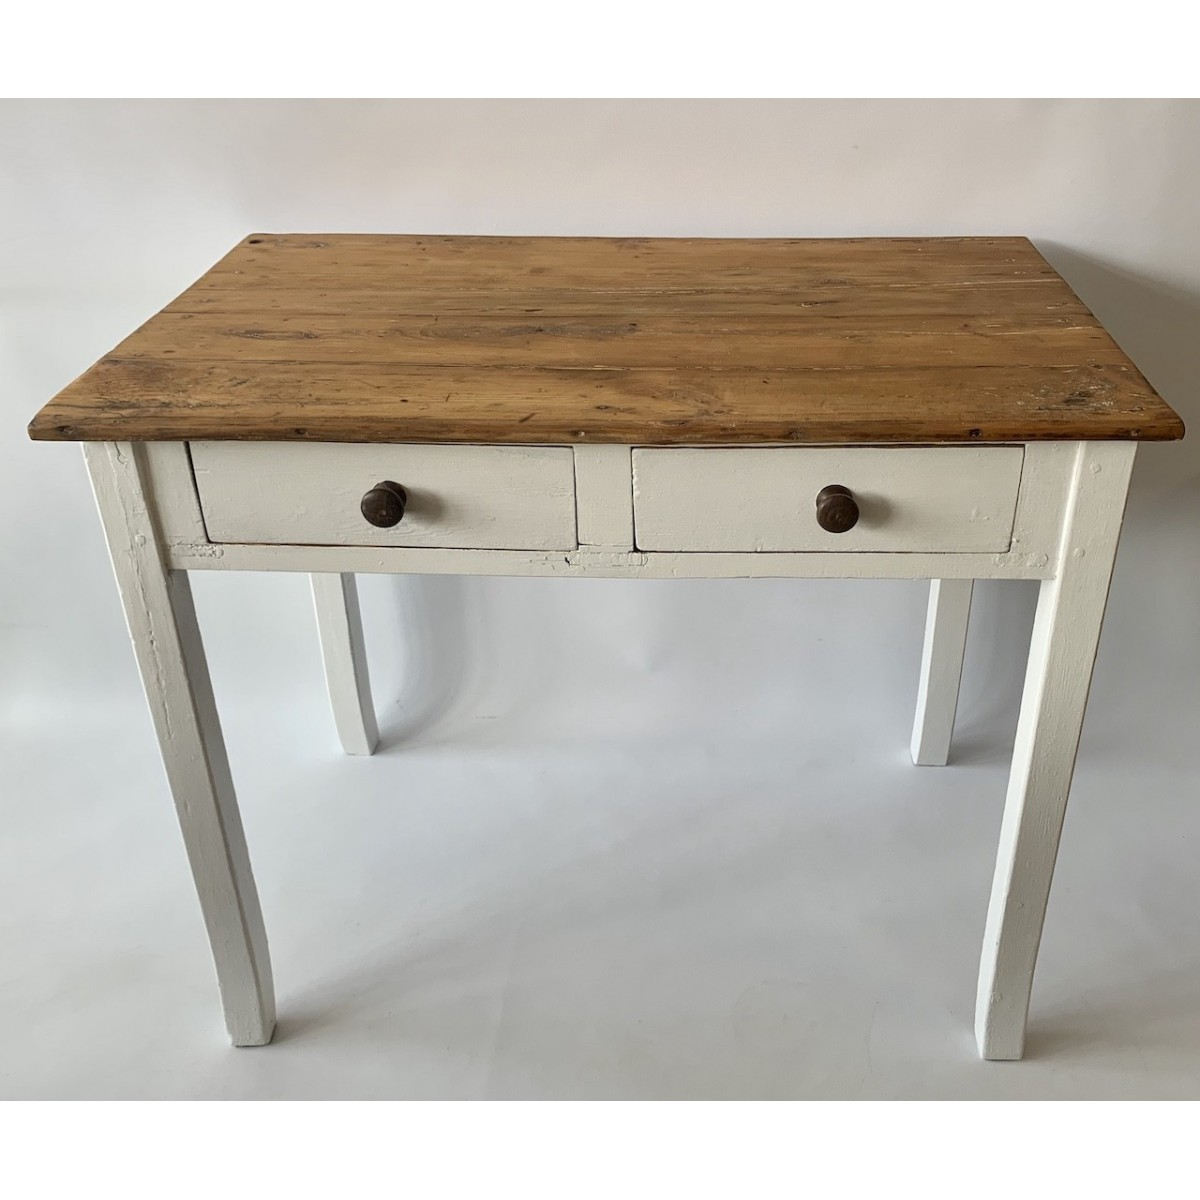 Rustic pine table, early 20th